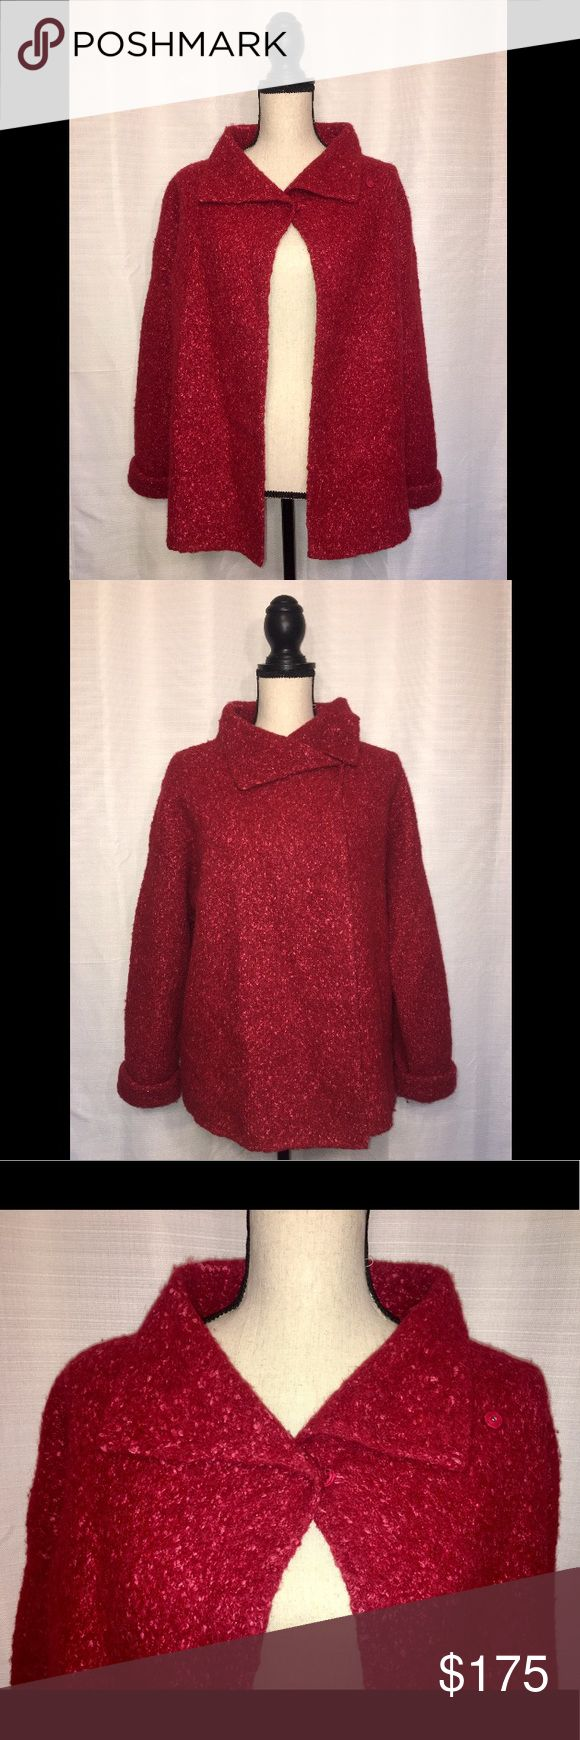 """$480 Eileen Fisher Red Pea Coat Large $480 Eileen Fisher Red Pea Coat in Size Large Petite. In Excellent Condition with NO signs of wear. Freshly dry cleaned! Approx measurements: Length: 25"""", Sleeve Length from shoulder seam: 21.5"""", Sleeve length from actual shoulder: 26"""". Photos are part of description. Feel free to ask questions. Thank you 😊 Eileen Fisher Jackets & Coats Pea Coats"""